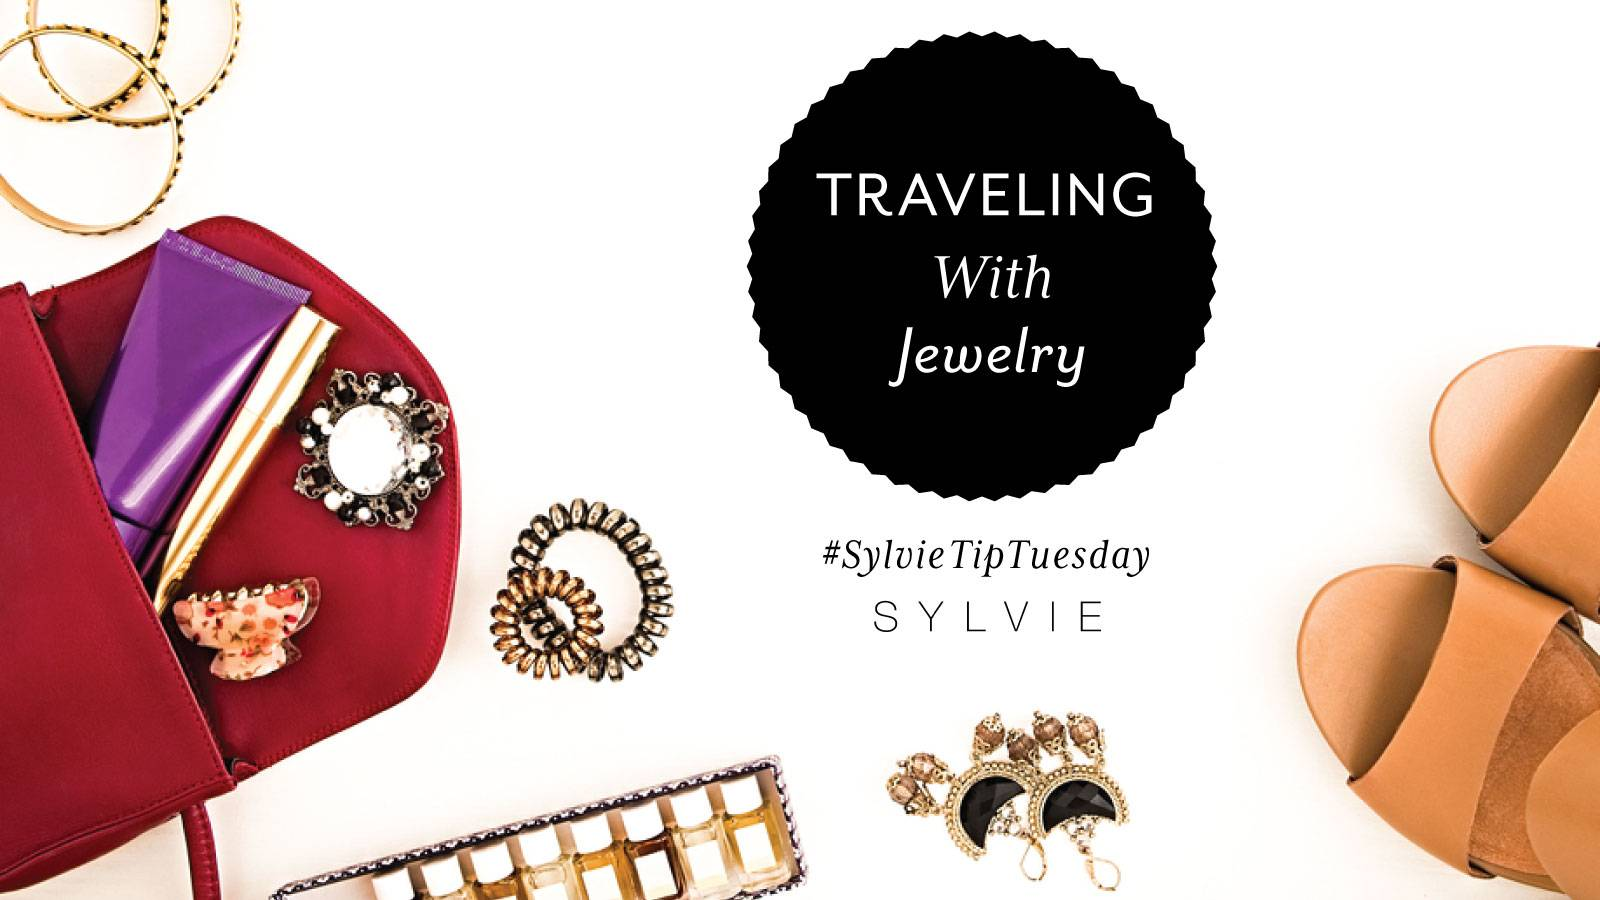 Travelling with Jewelry - Sylvie Tip